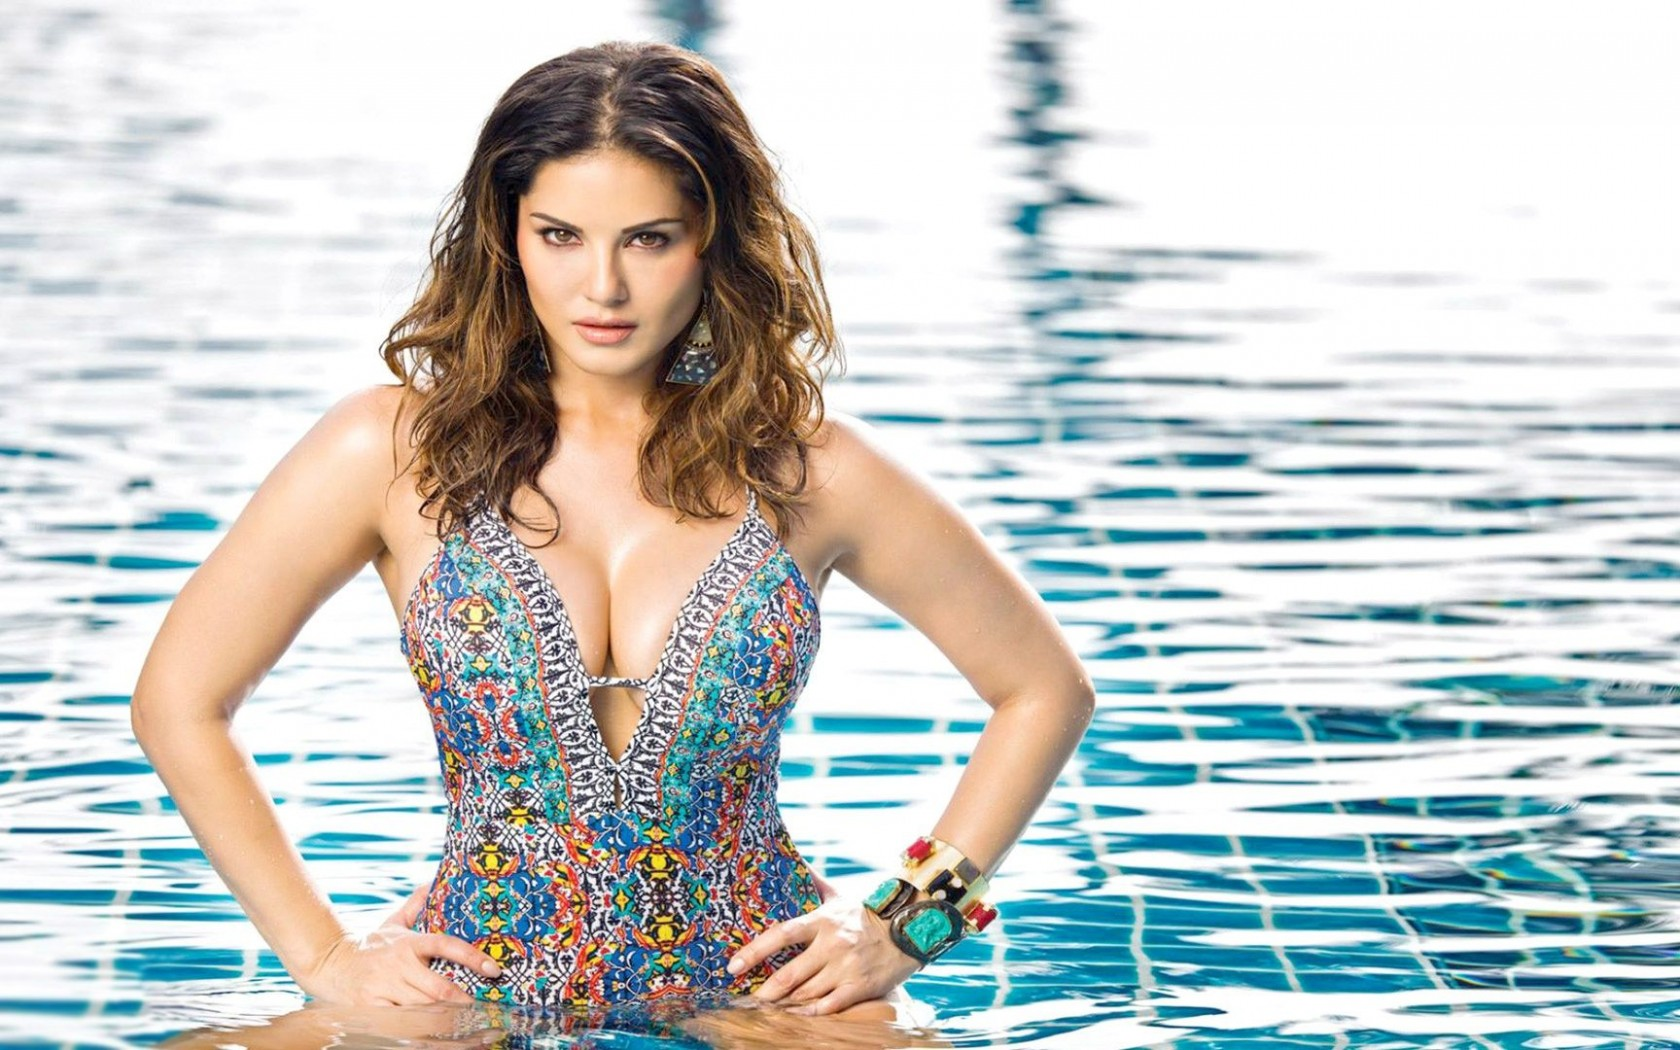 Sunny Leone's  Floral Monokini Look Must Cease Your Attention